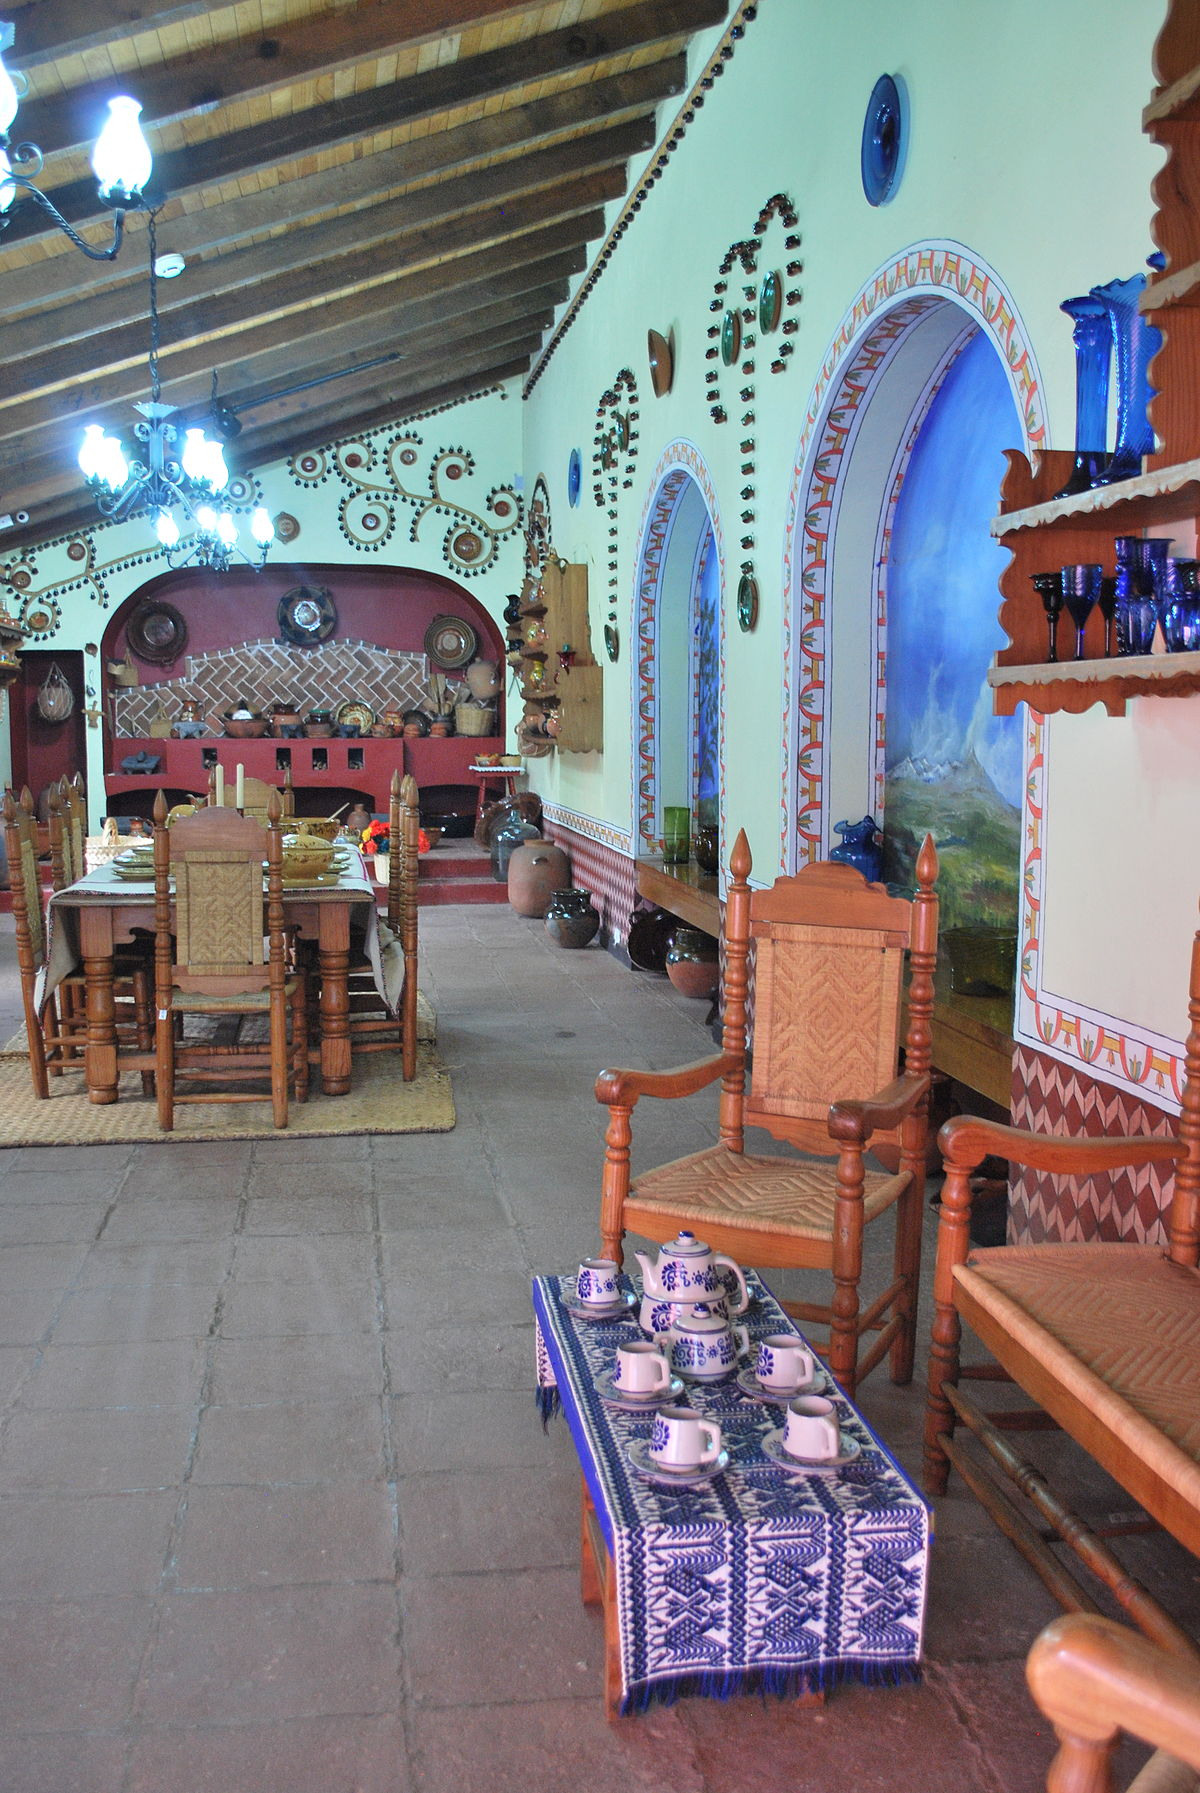 Handcrafts and folk art in the State of Mexico - Wikipedia